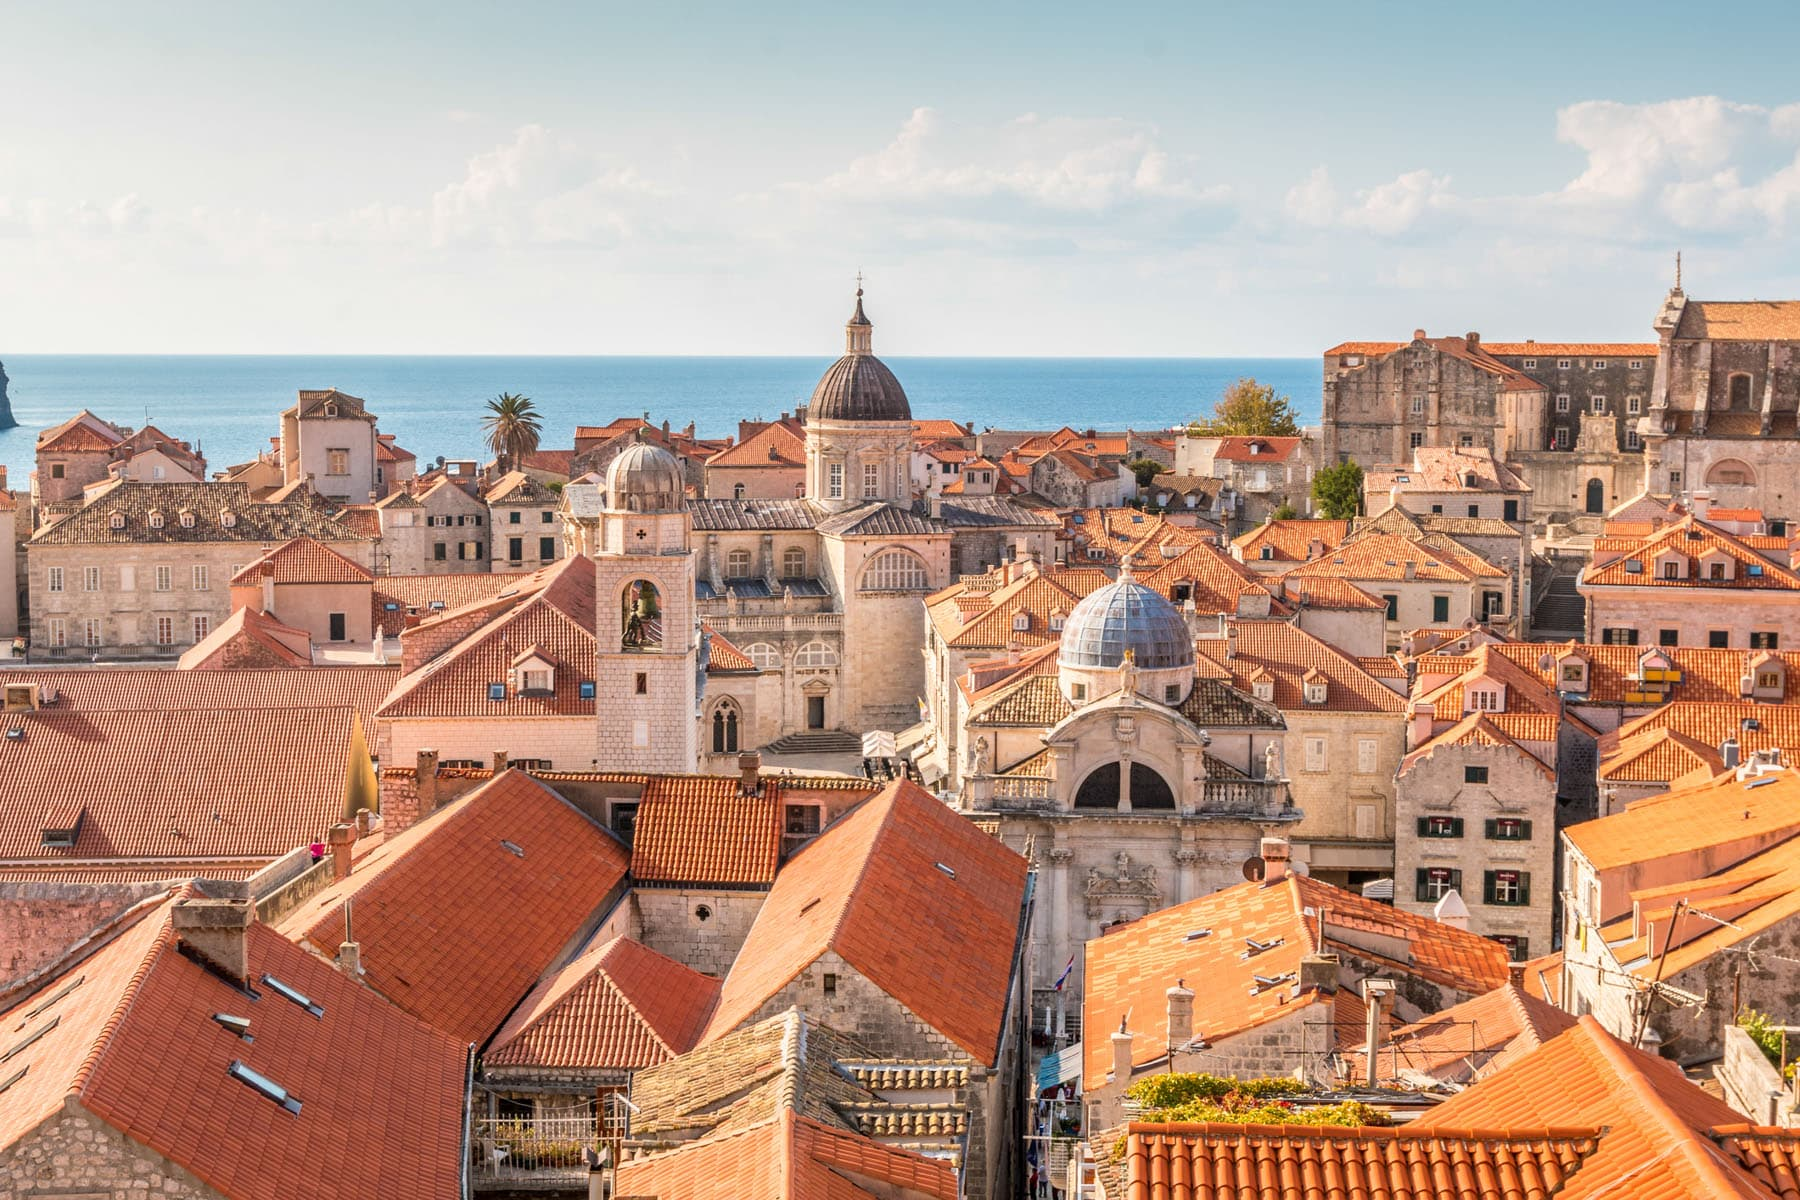 DUBROVNIK - Partenza Travel creates luxury vacations to Croatia